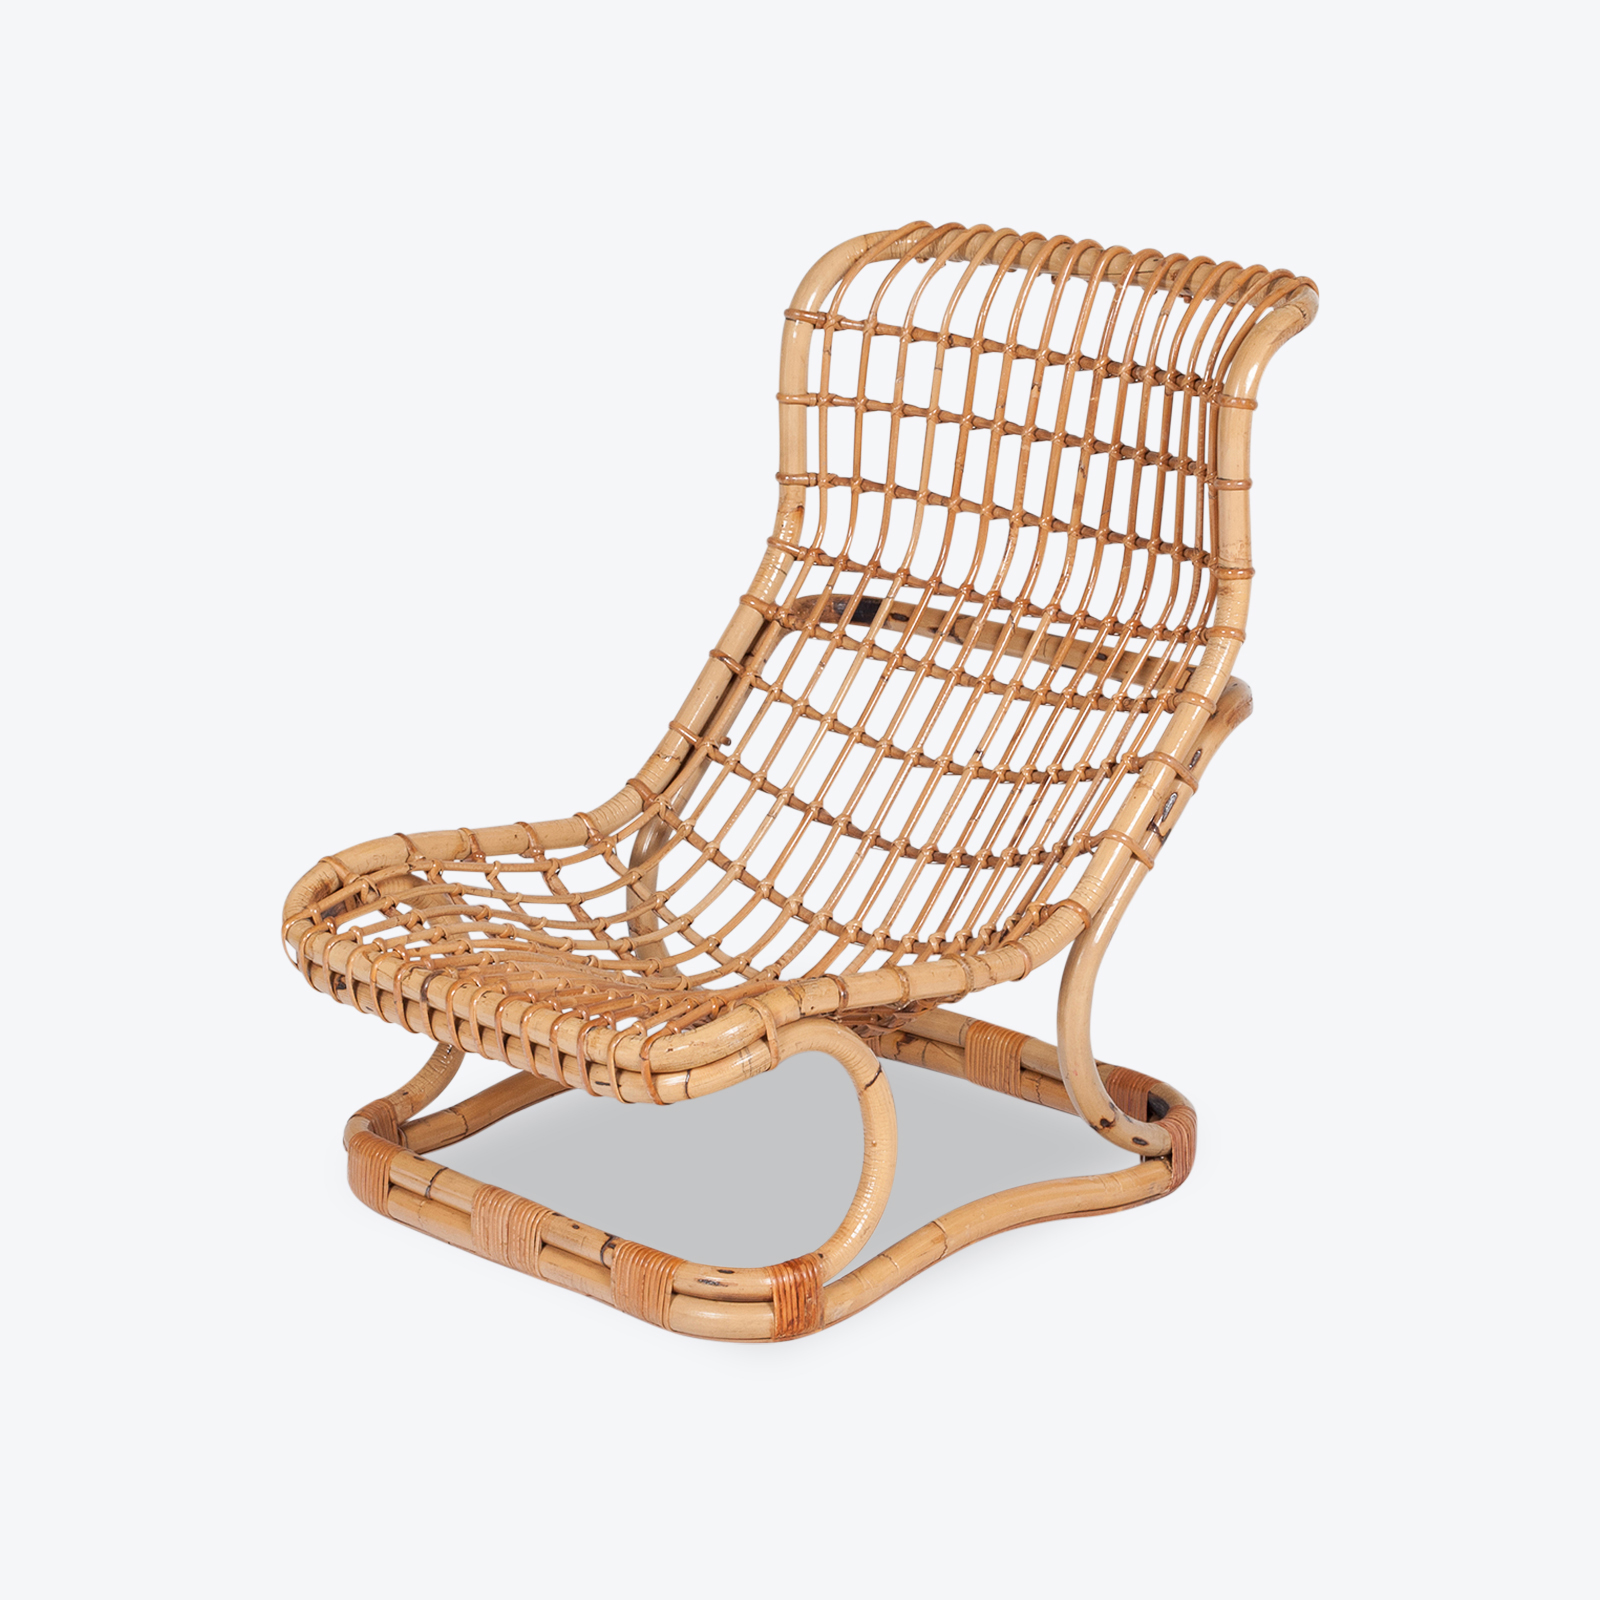 Lounge Chair By Tito Agnoli In Cane, 1960s, Italy Hero